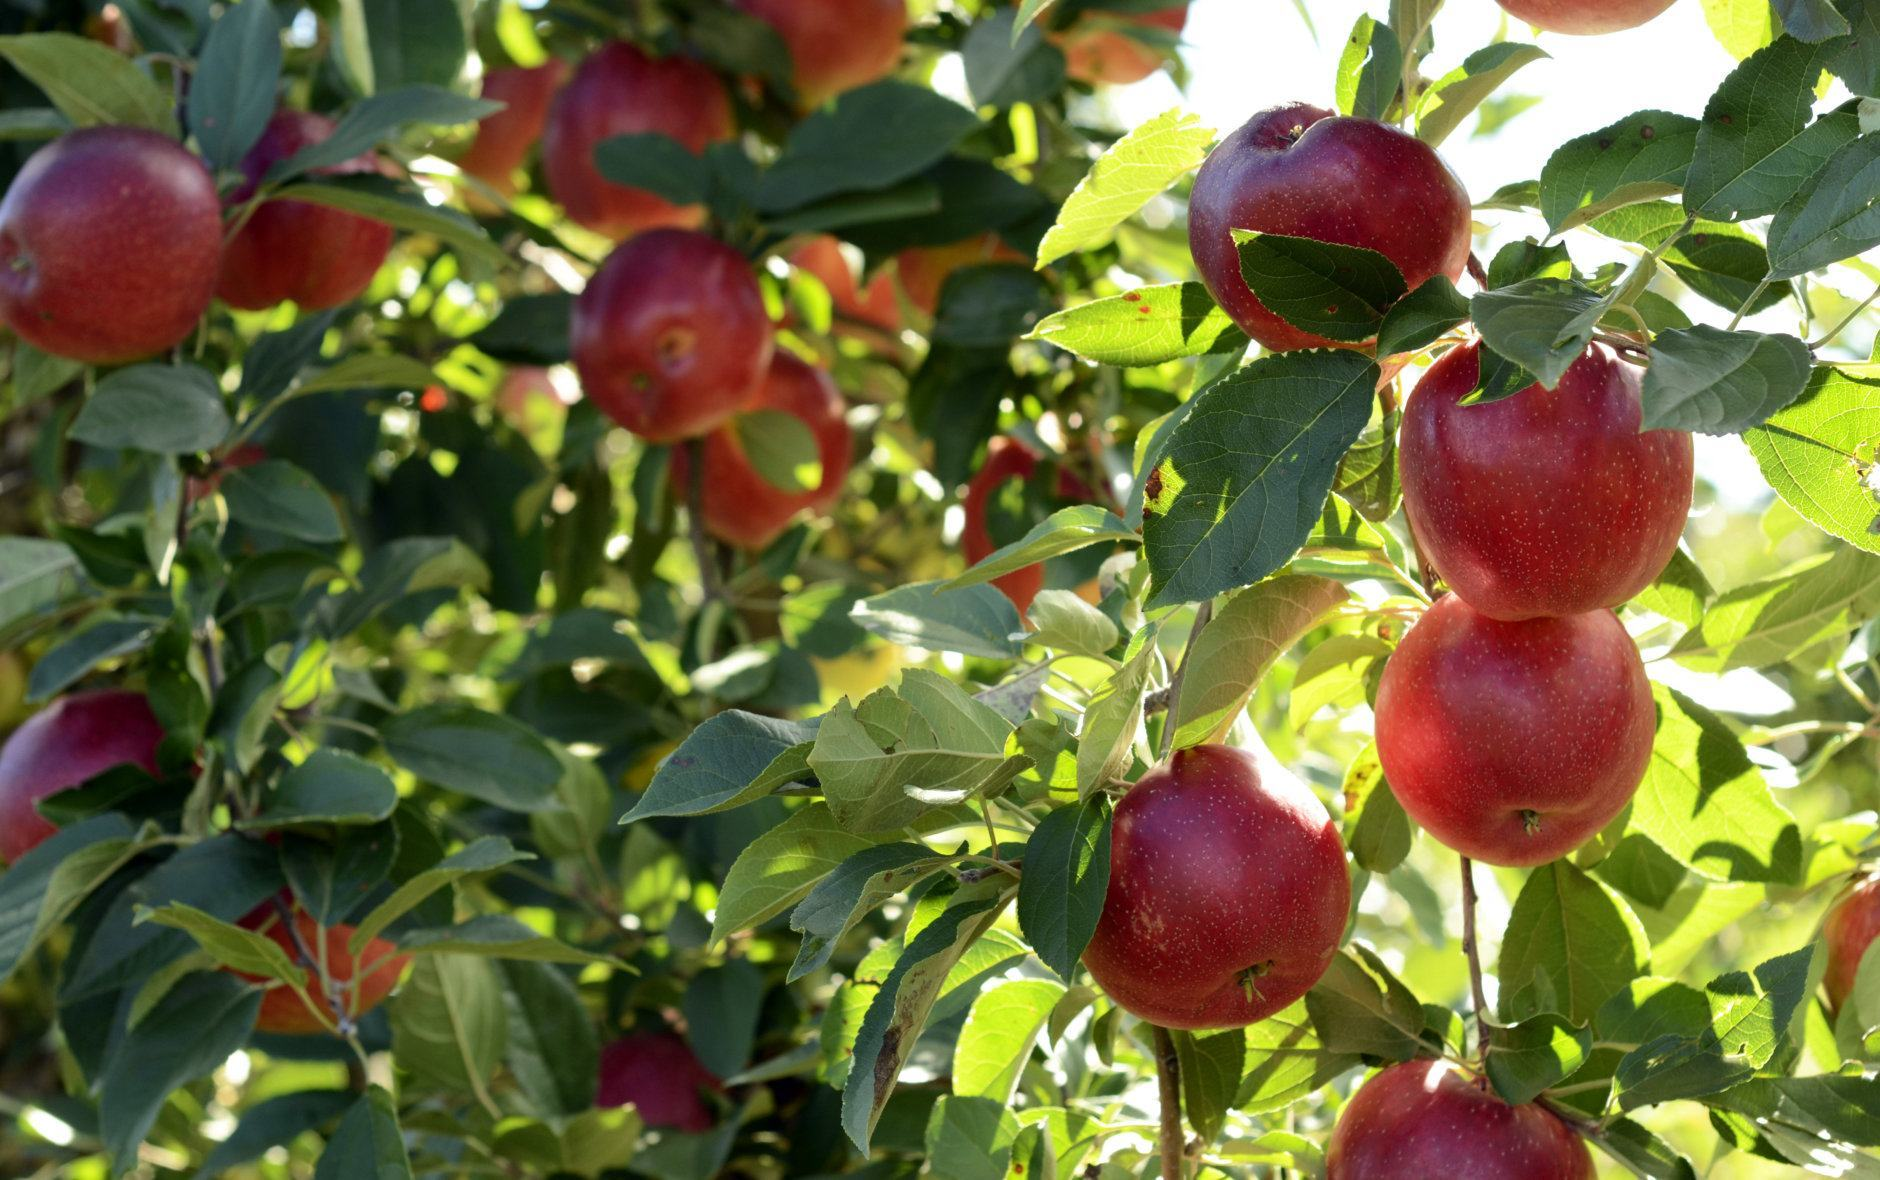 """<p><a href=""""http://www.markermillerorchards.com/index.php/home/""""><b>Marker-Miller Orchards</b></a><br /> <em><span style=""""font-weight: 400;"""">3035 Cedar Creek Grade, Winchester, Virginia</span></em></p> <p>There are plenty of apples to pick and plenty of fun for little ones at Marker-Miller Orchards. Check out the on-site bakery, playground, cow train and picnic area.<span style=""""font-weight: 400;"""">The annual Apple Harvest Festival takes place Oct. 12 and 13.</span></p> <p><a href=""""http://crookedrunorchard.com/"""" target=""""_blank"""" rel=""""noopener""""><strong>Crooked Run Orchard</strong></a><br /> <em>37883 E Main St, Purcellville, VA</em></p> <p>This small family farm in Loudoun County, Virginia, grows everything from peaches to pumpkins <span style=""""font-weight: 400;"""">— and yes, apples. There is no admission fee.</span></p>"""